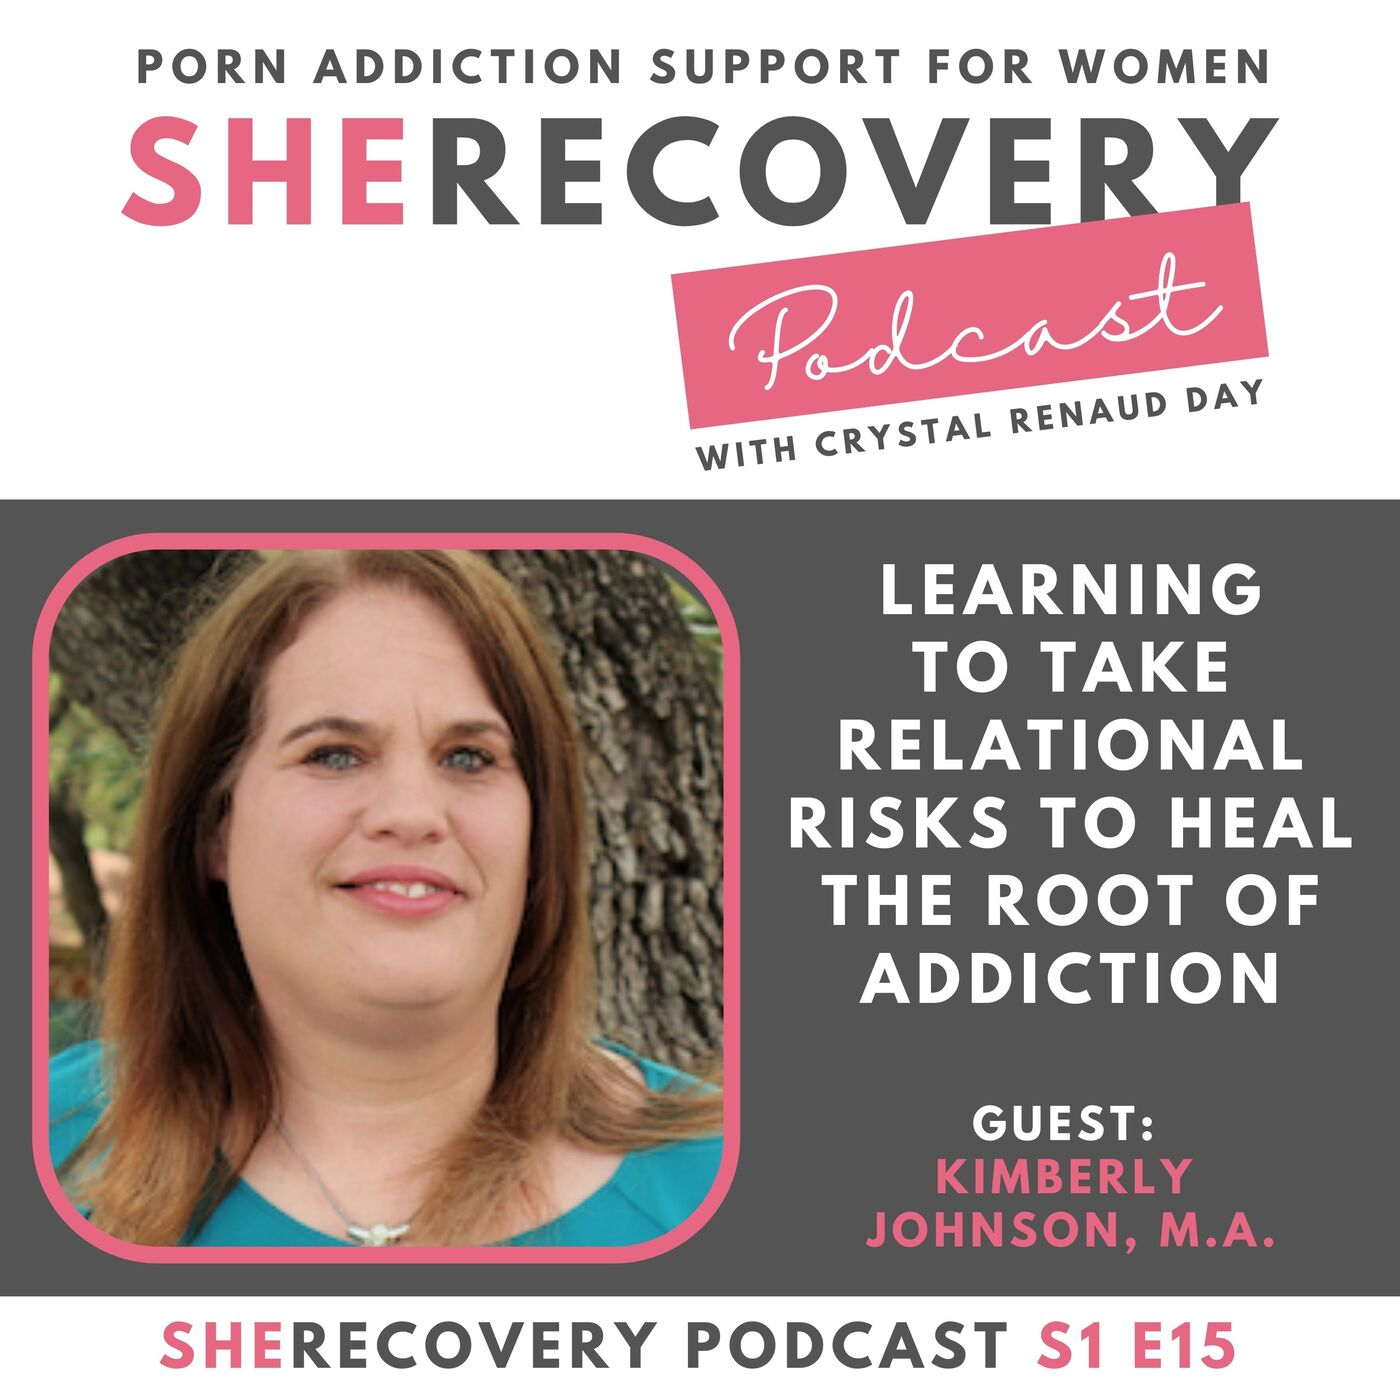 S1 E15: Kimberly Johnson - Learning to Take Relational Risks to Heal the Root of Addiction